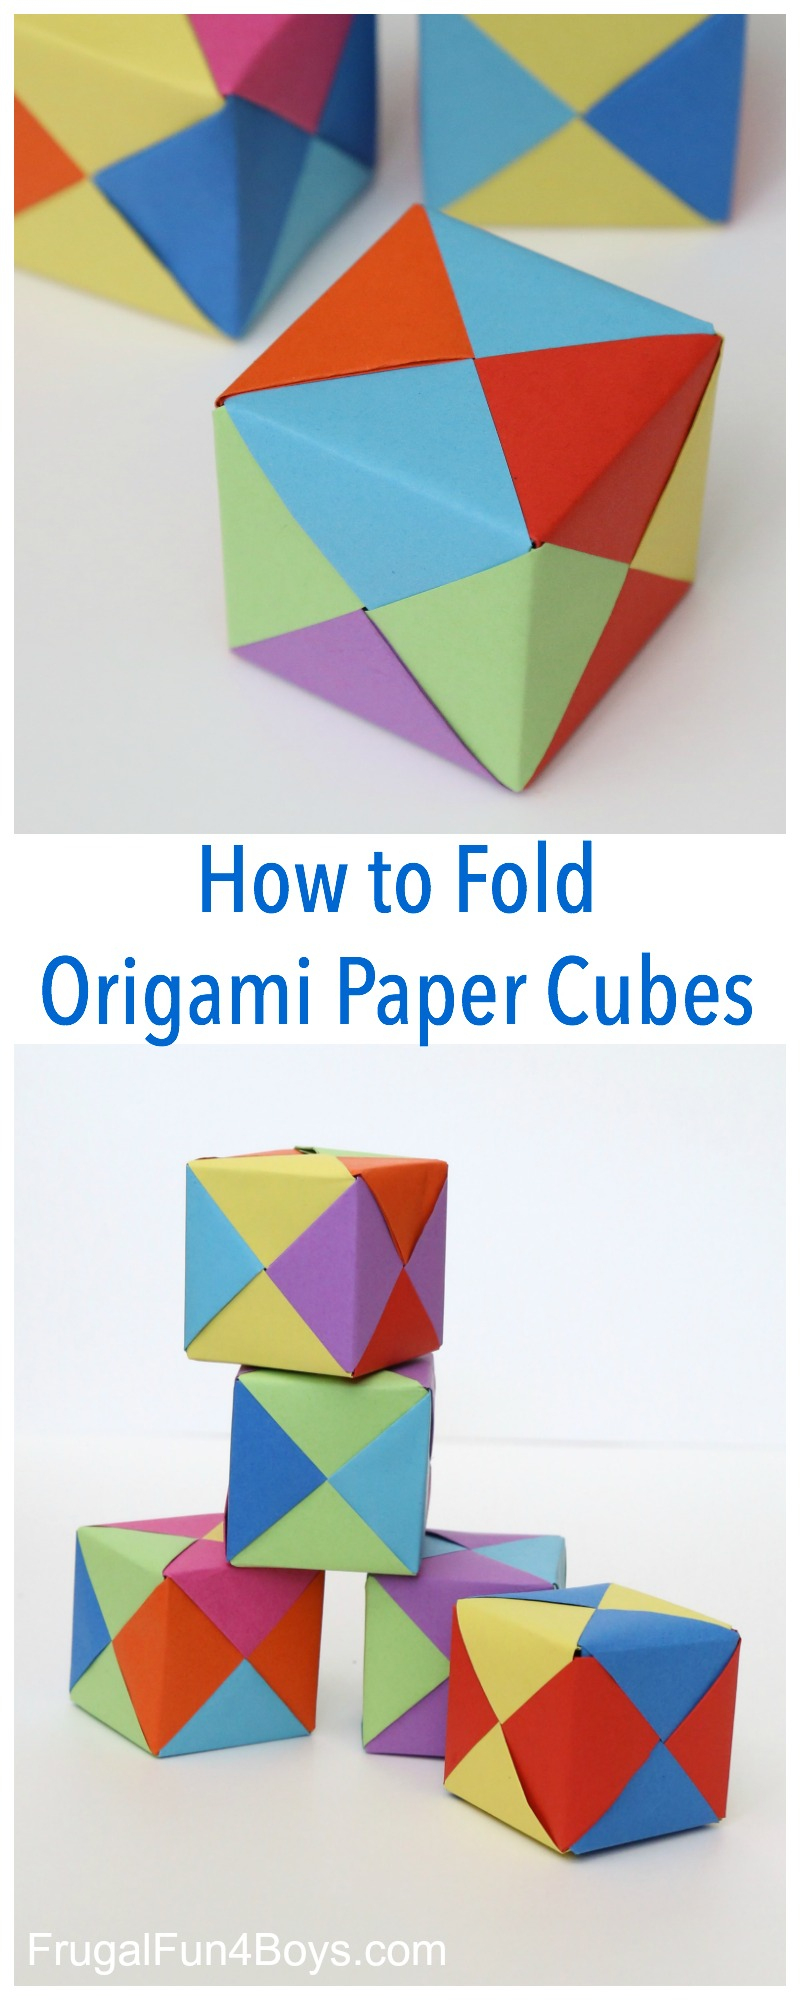 How To Fold Origami Paper Cubes - Frugal Fun For Boys And Girls - Printable Origami Puzzle